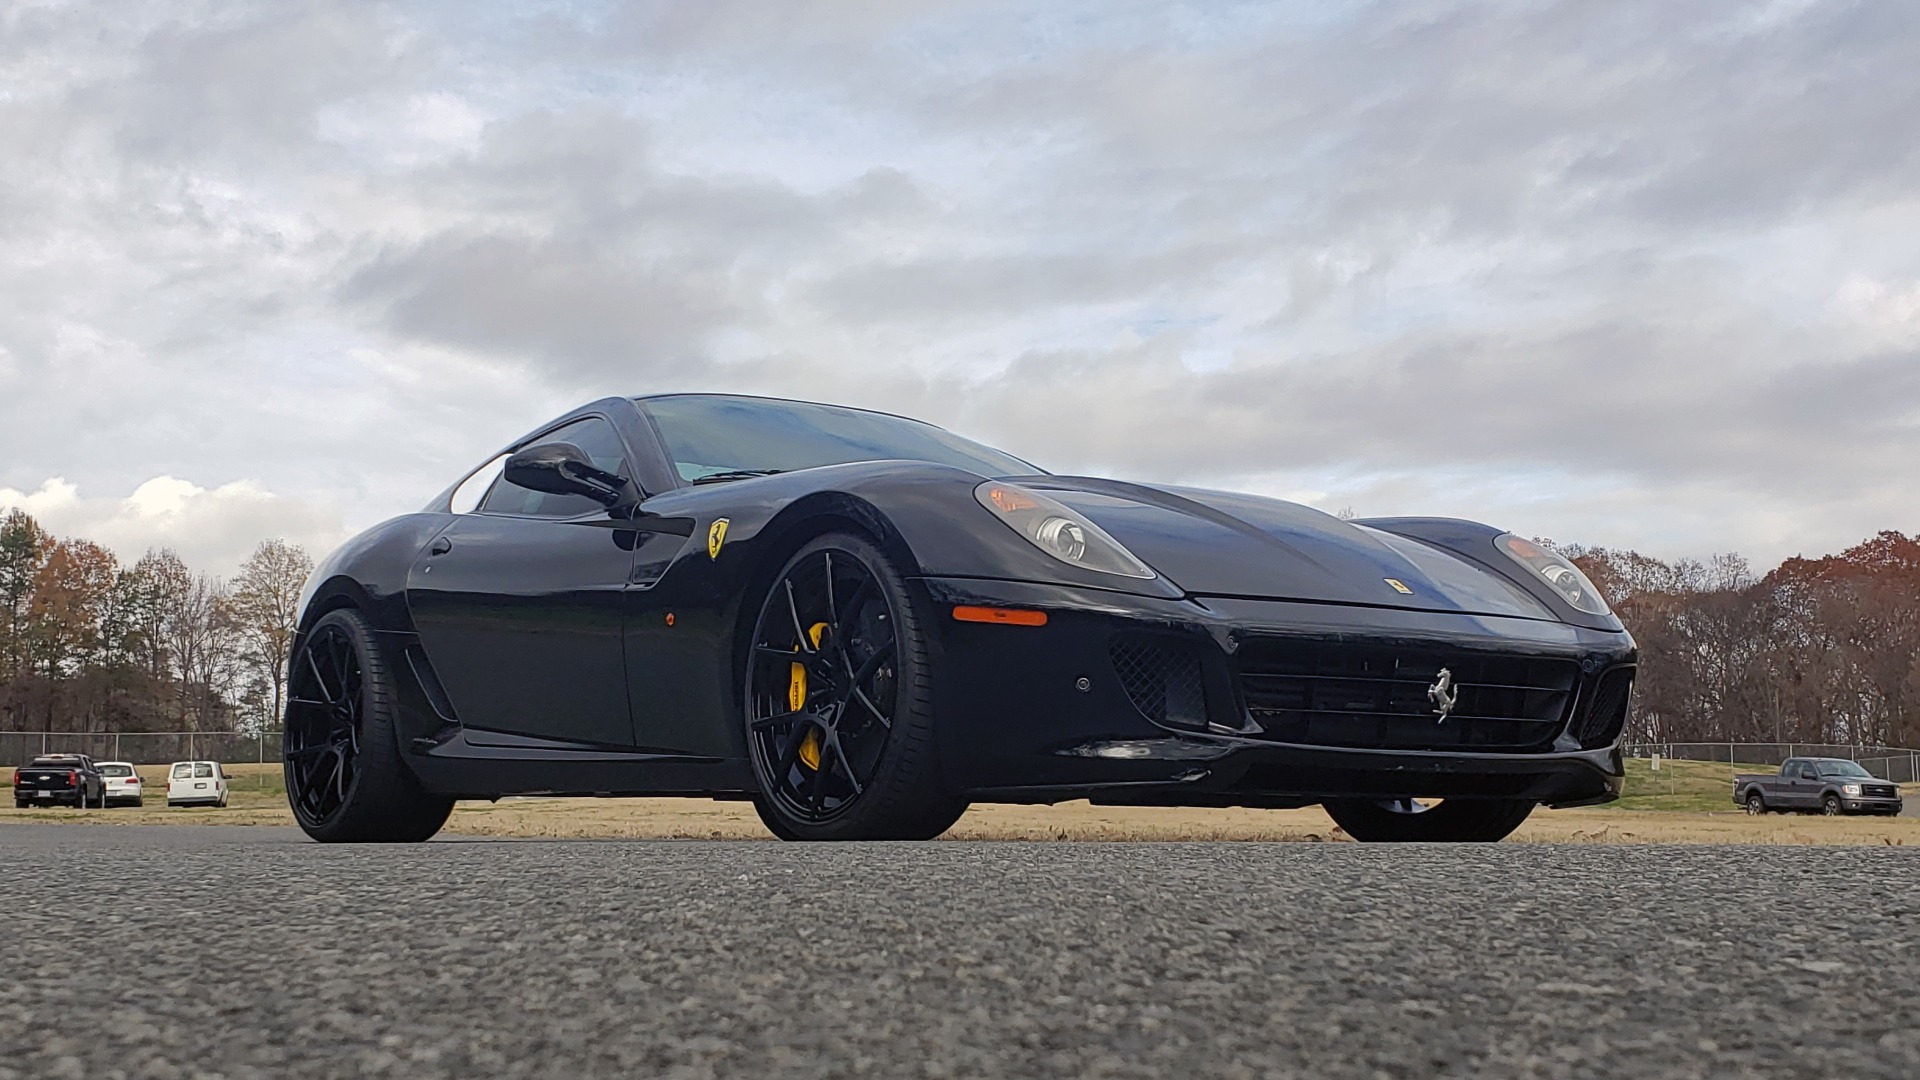 Used 2007 Ferrari 599 GTB FIORANO HGTE / V12 / F1 TRANS / NAV / BOSE / CUSTOM WHEELS for sale Sold at Formula Imports in Charlotte NC 28227 12